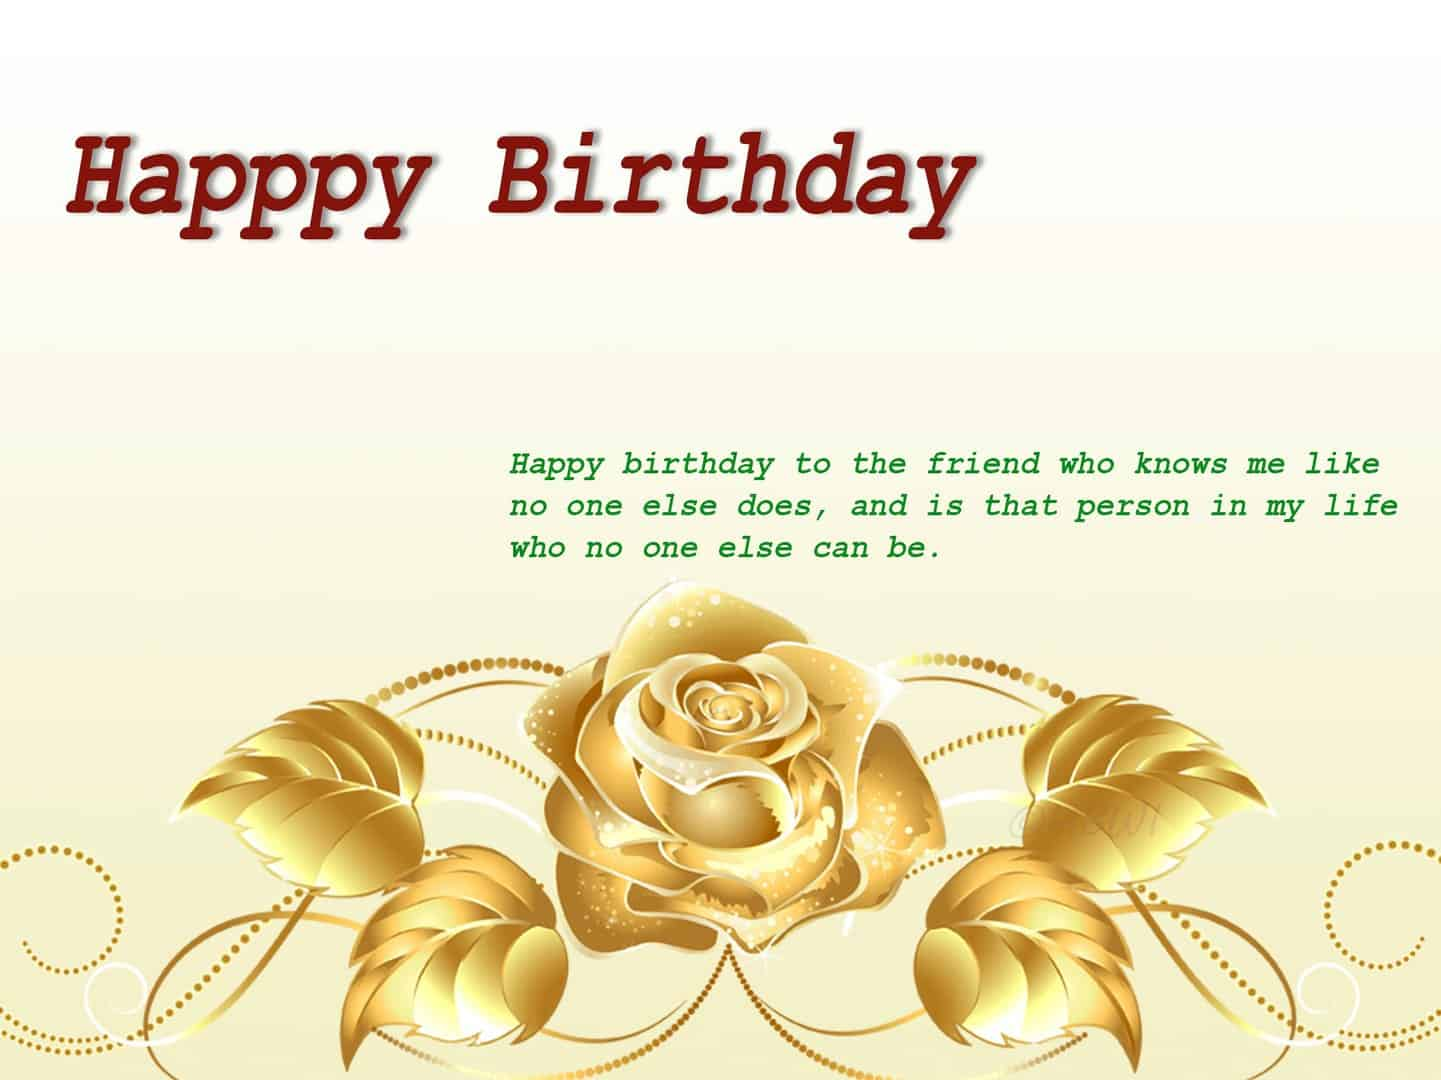 Exclusive Happy birthday wishes cards with flowers